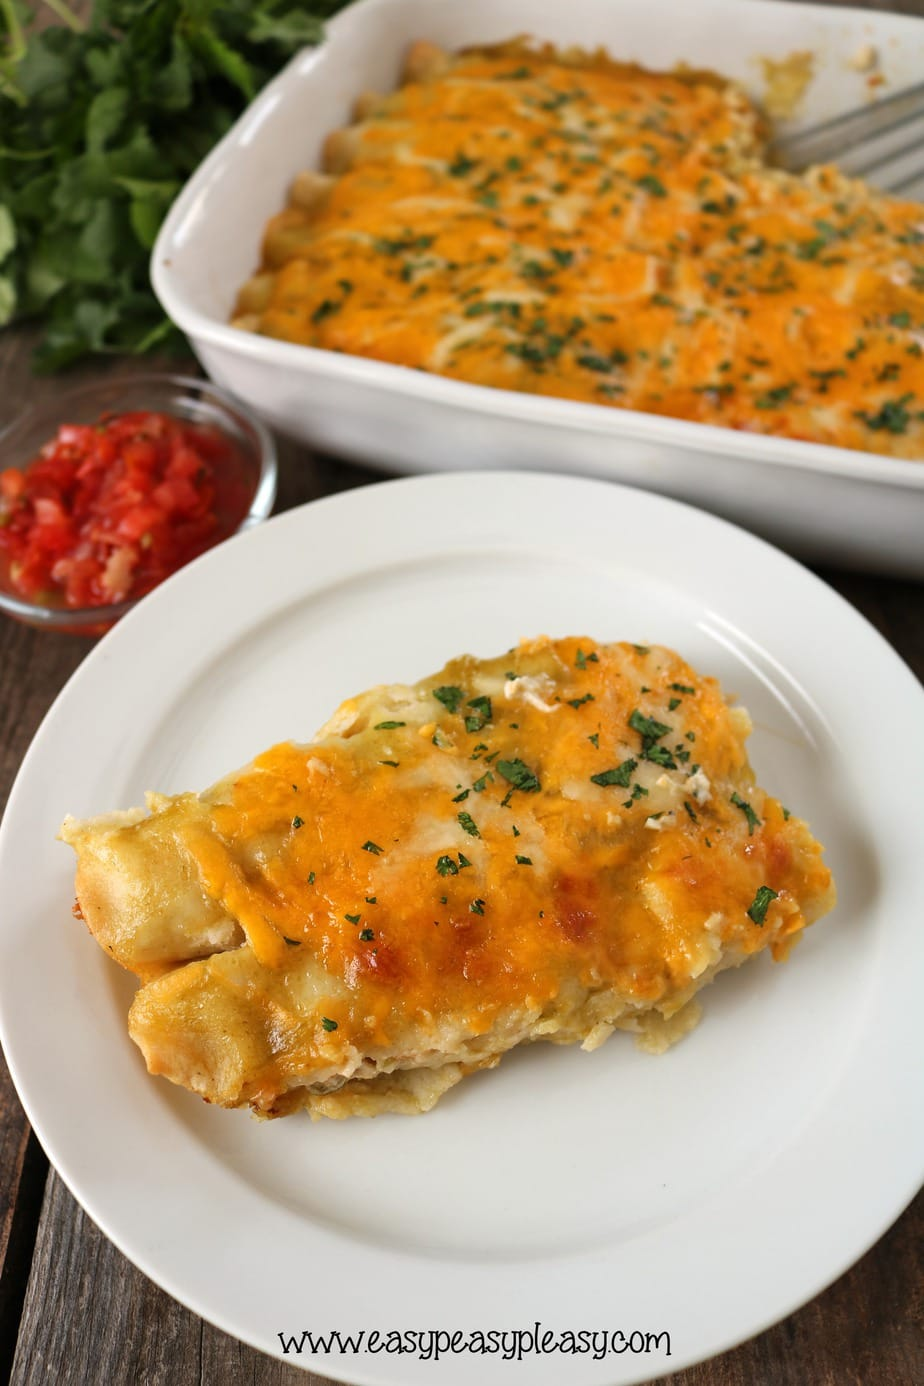 You will love these delicious Green Chili Chicken Enchiladas and the ease to make using a rotisserie chicken.